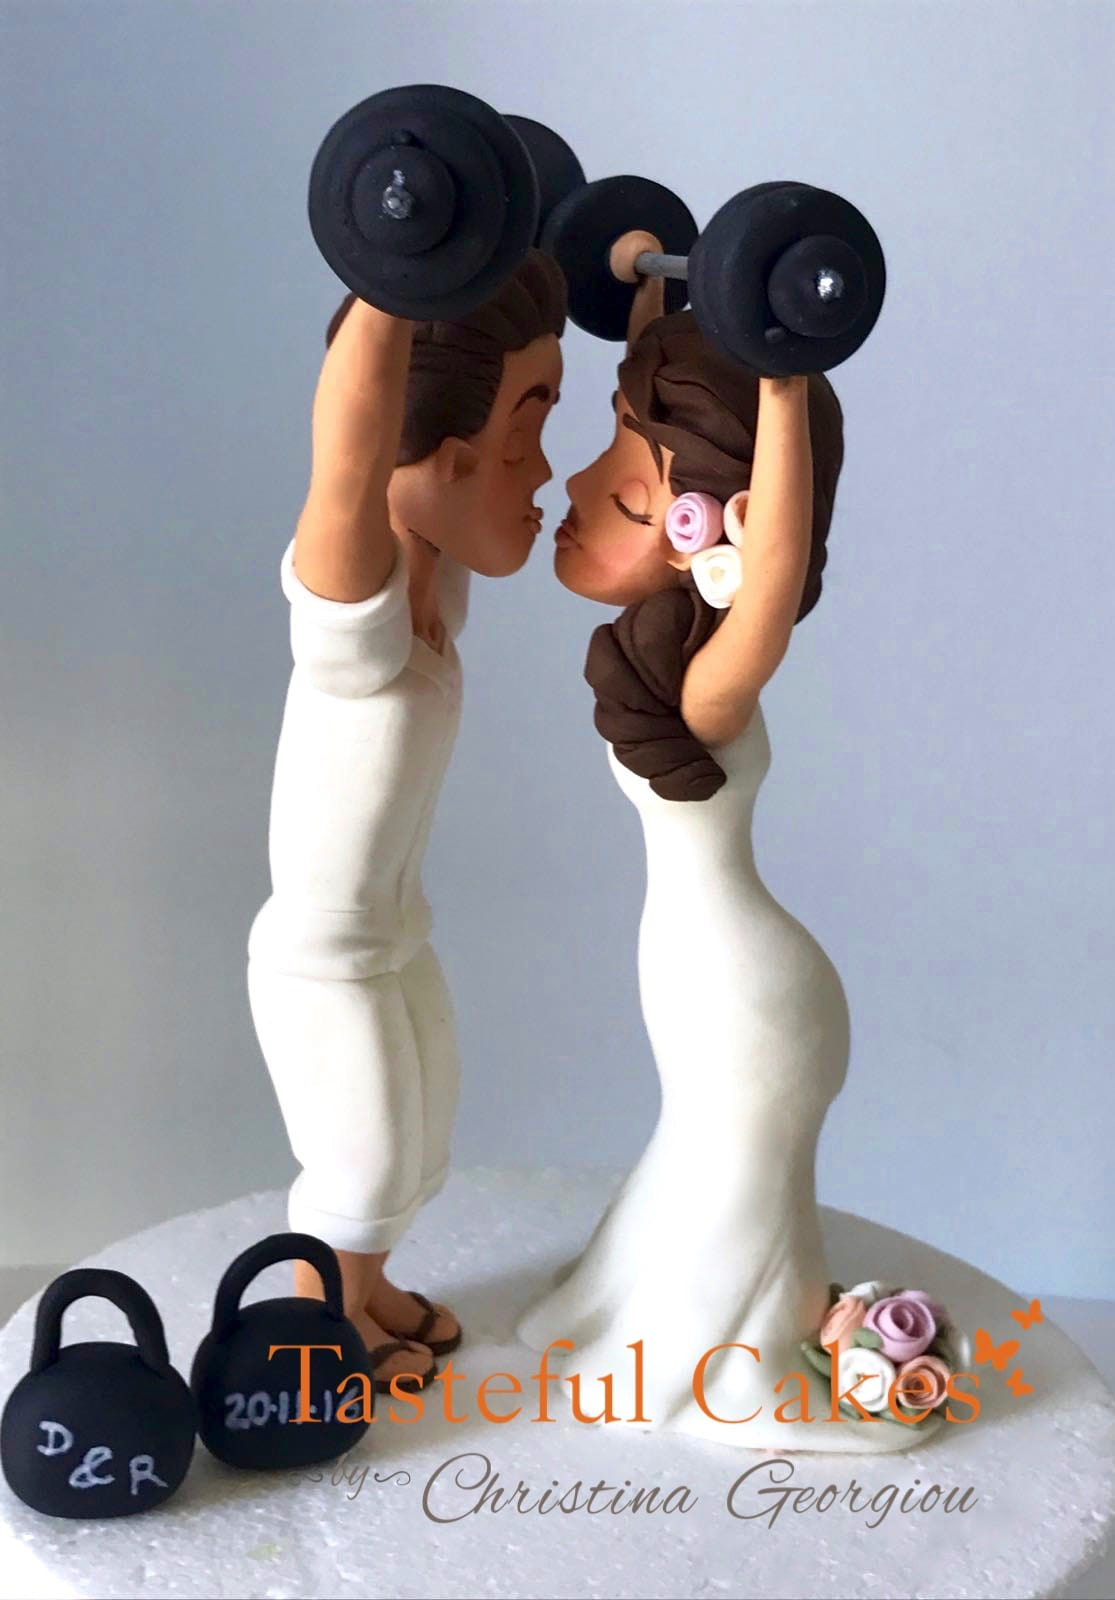 Funny Gym Cake Toppers